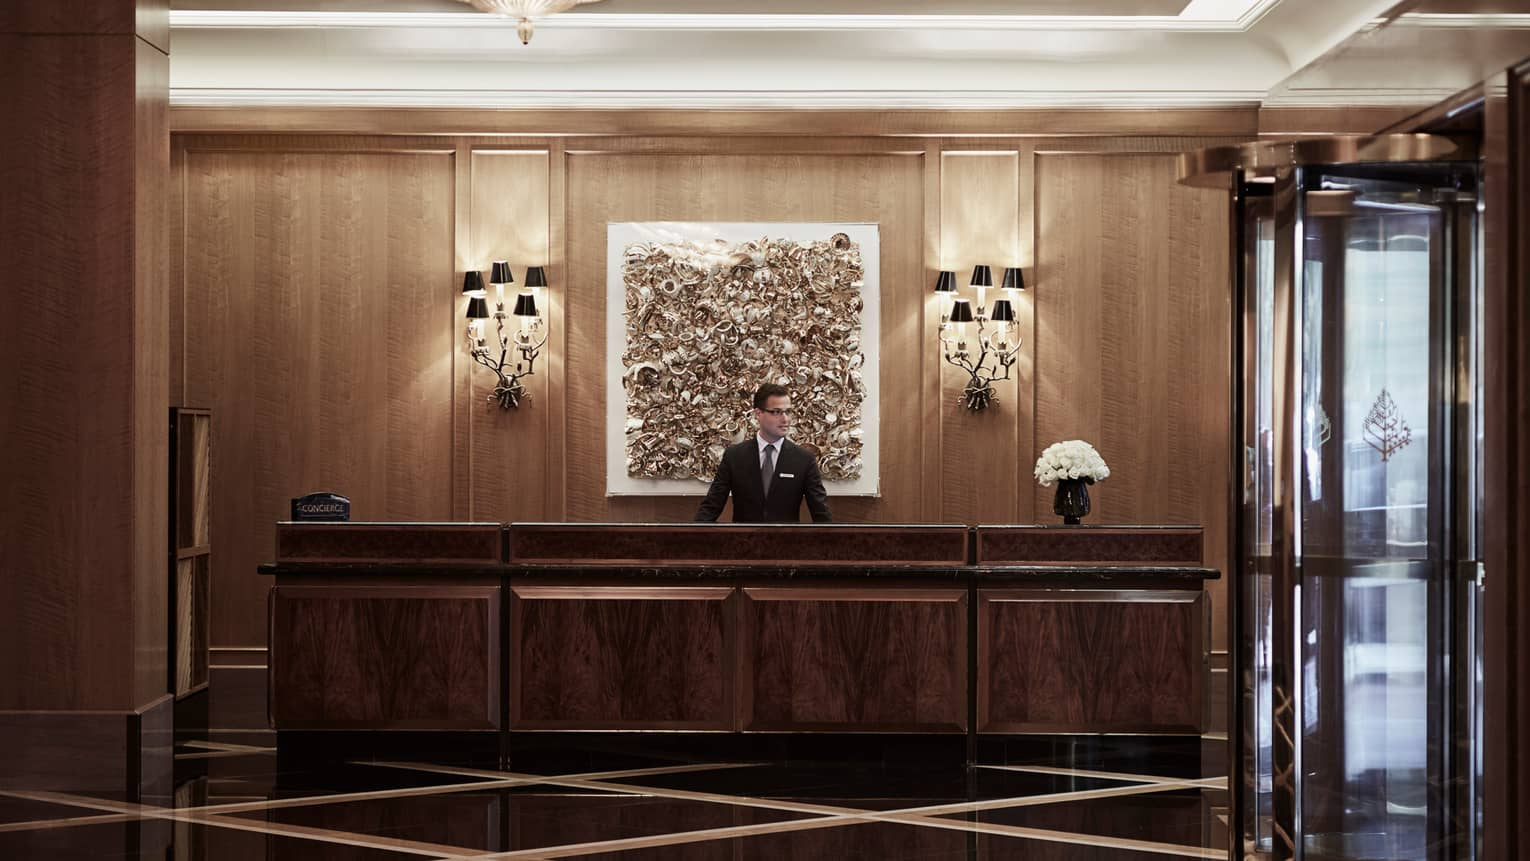 Concierge in suit and tie behind long wood desk in lobby beside glass revolving door